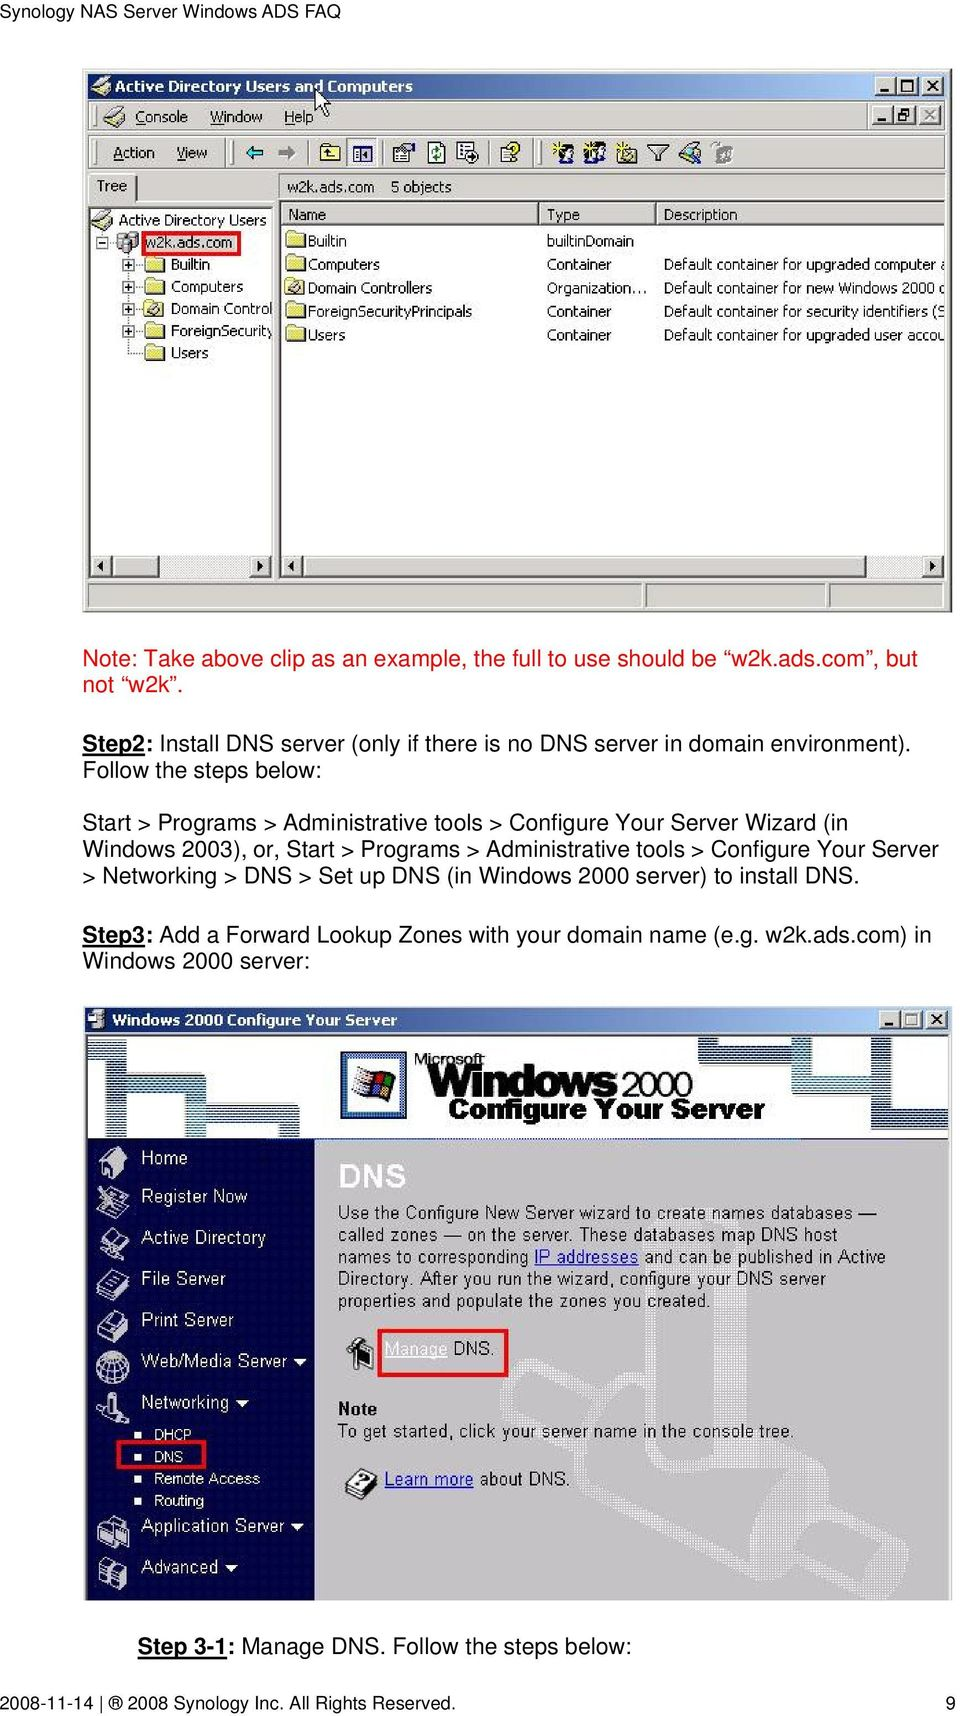 Follow the steps below: Start > Programs > Administrative tools > Configure Your Server Wizard (in Windows 2003), or, Start > Programs > Administrative